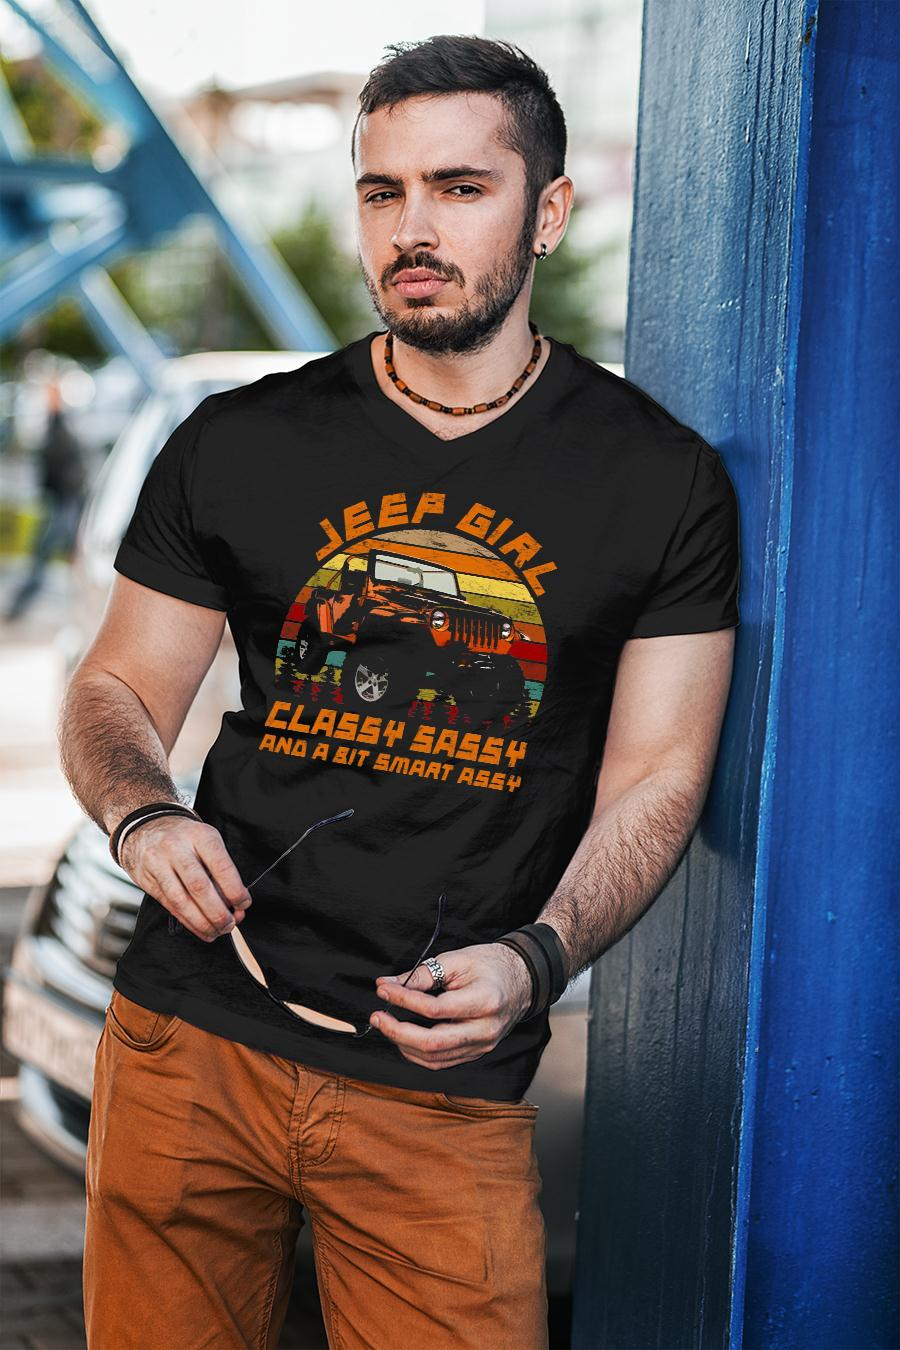 Vintage – Jeep Girl Classy Sassy And A Sit Smart Assy Shirt unisex